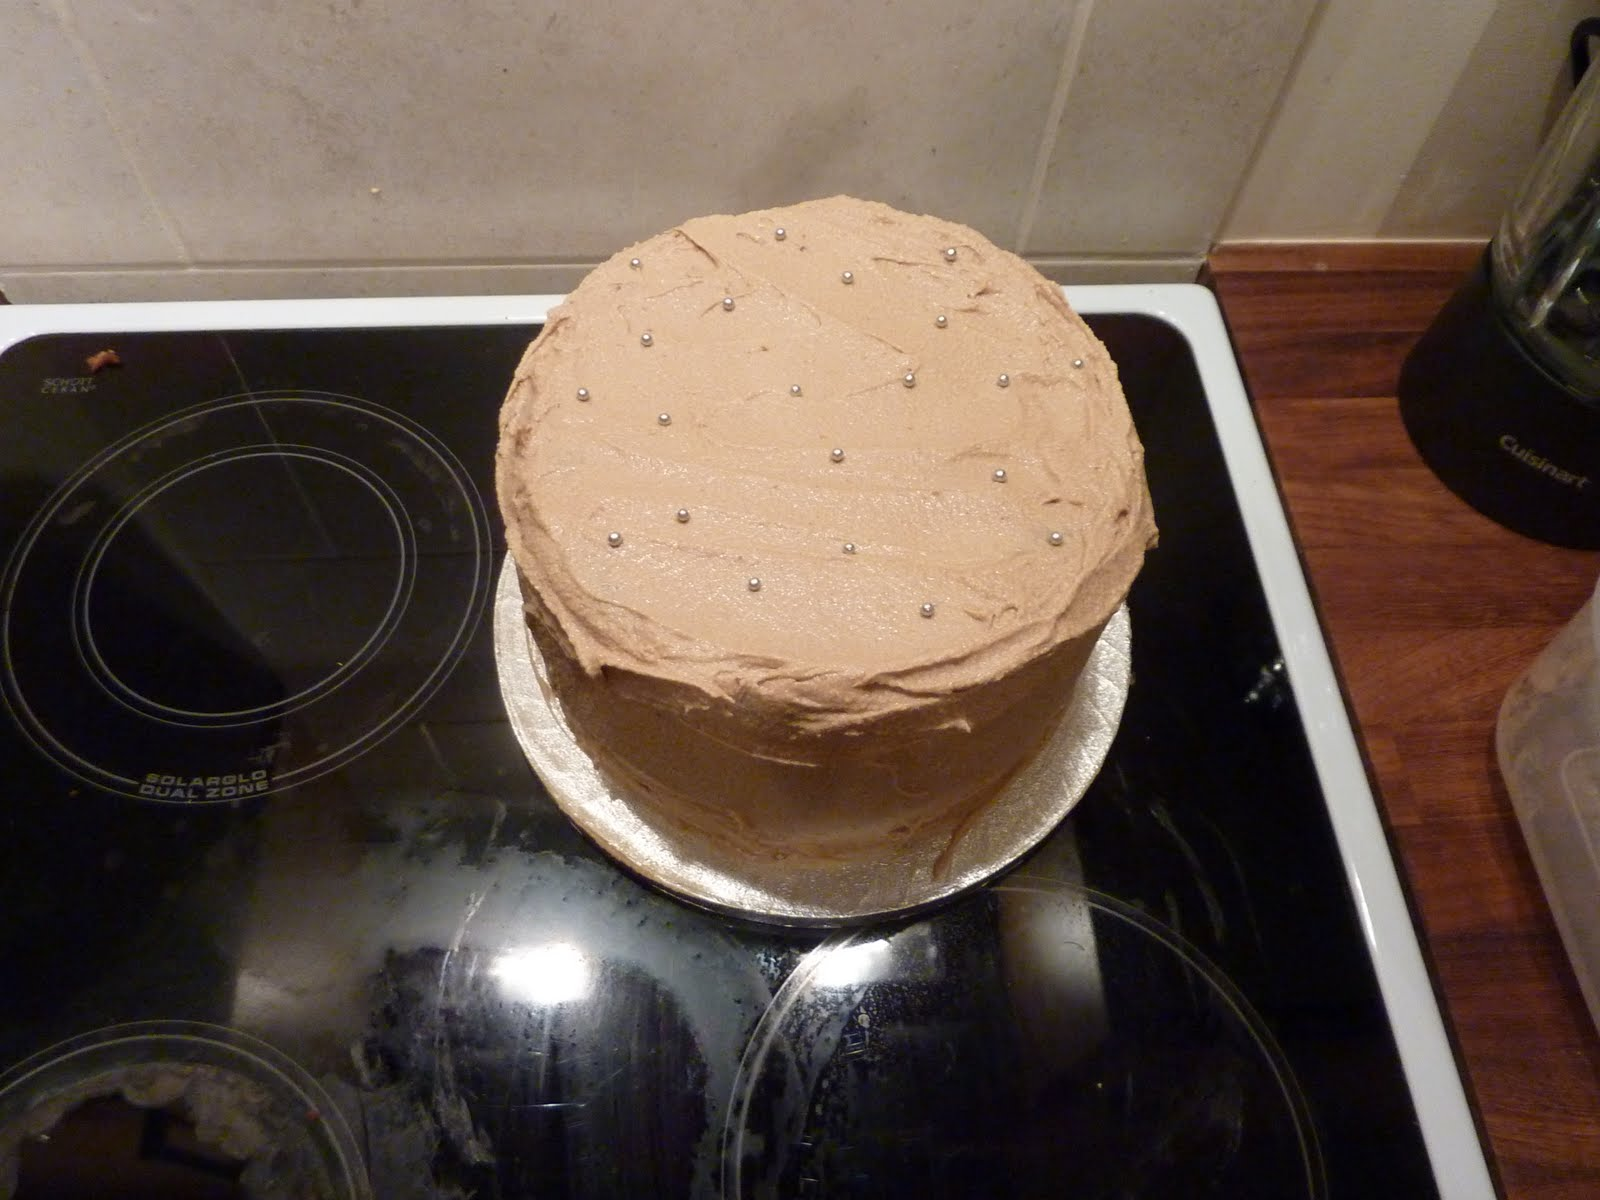 Hummingbird Bakery Spiced Apple Cake With Brown Sugar Frosting